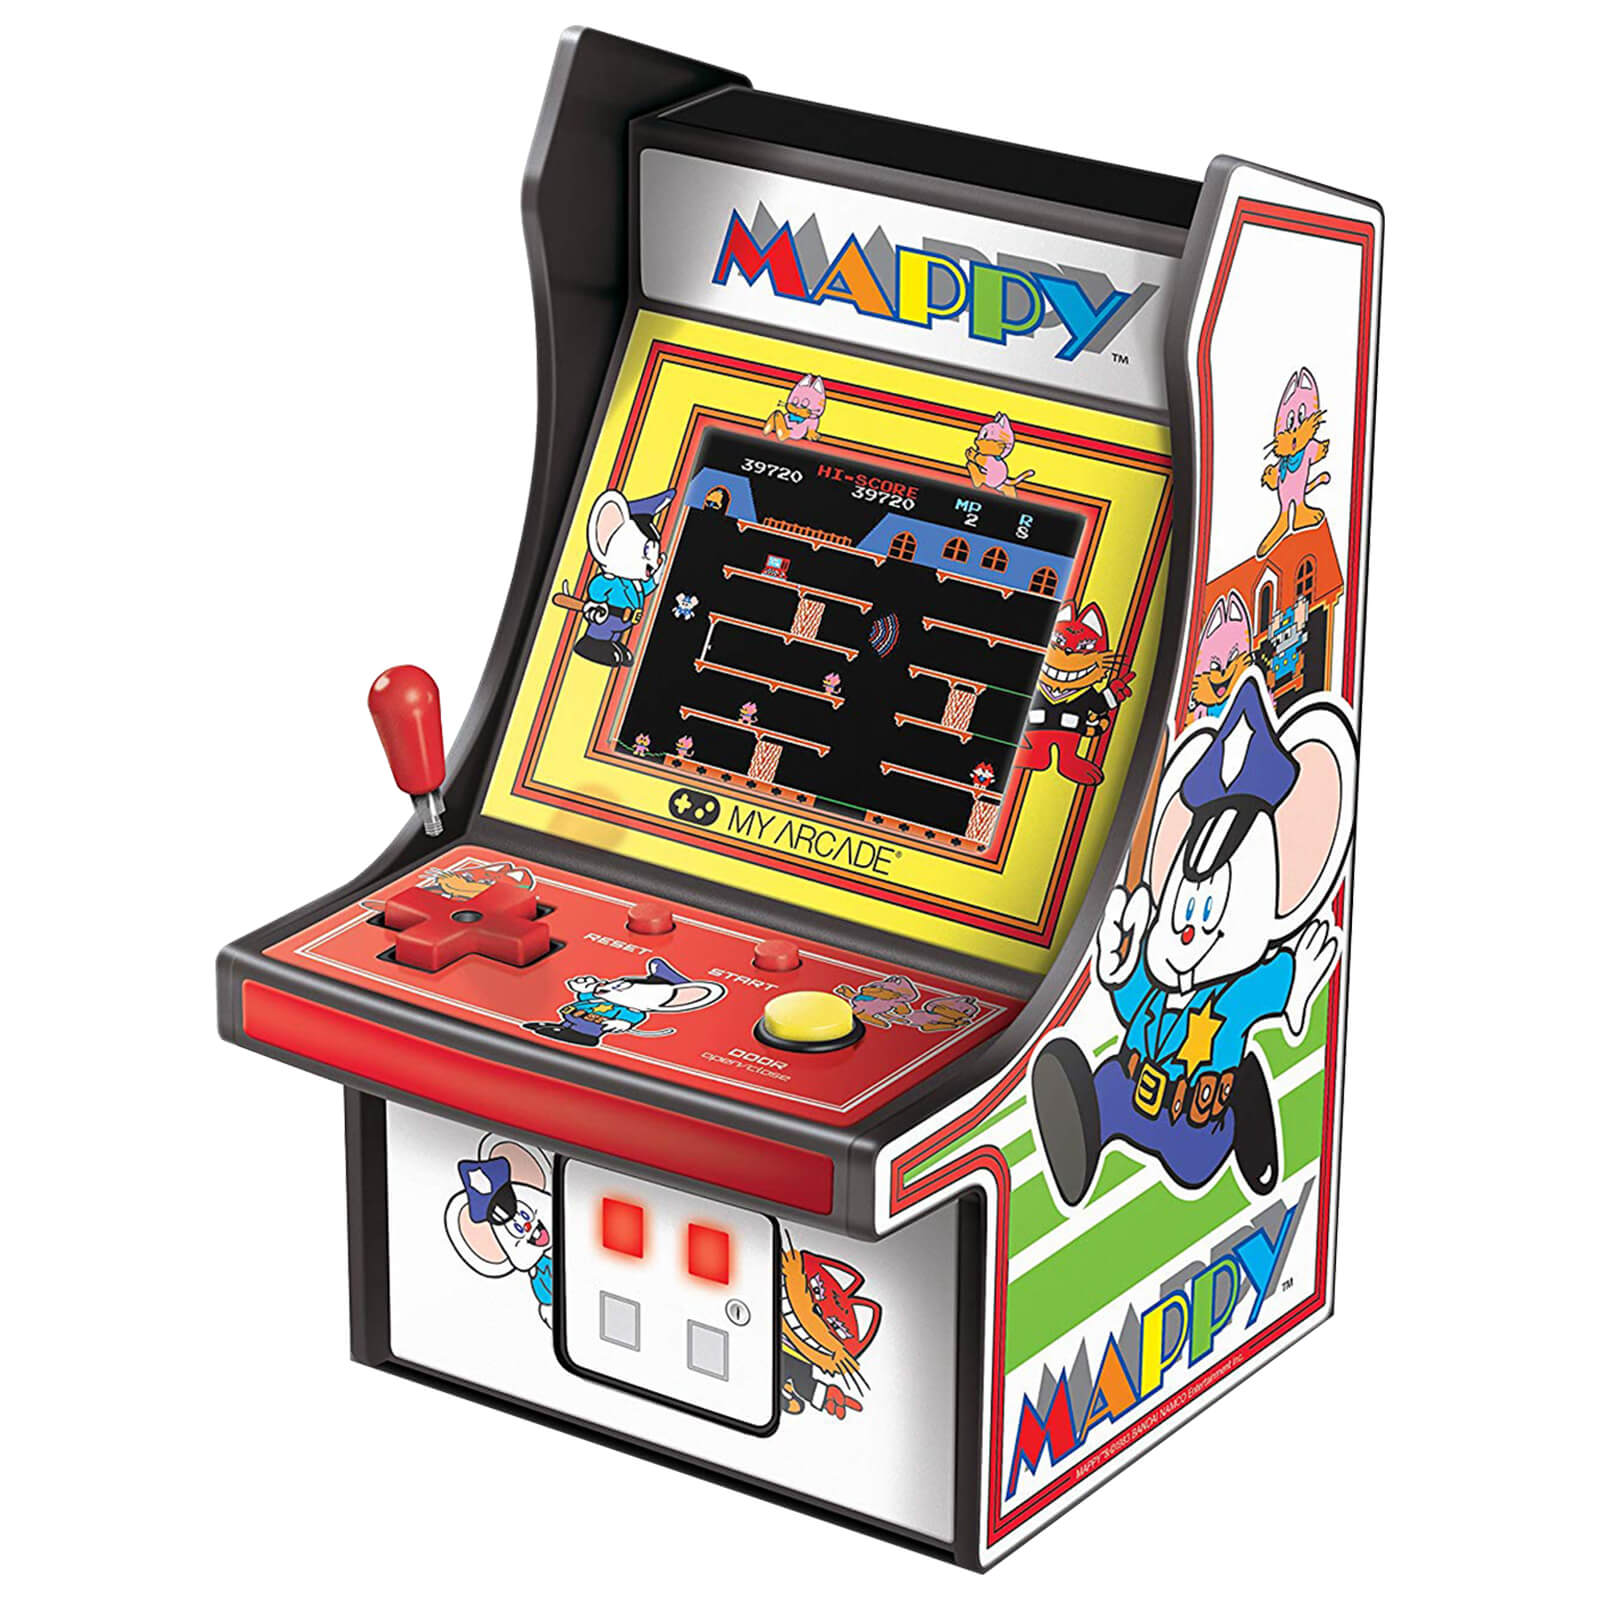 DreamGear Retro Arcade 6 Inch Mappy Micro Player £9.99 (RRP £49.99) @ ZAVVI